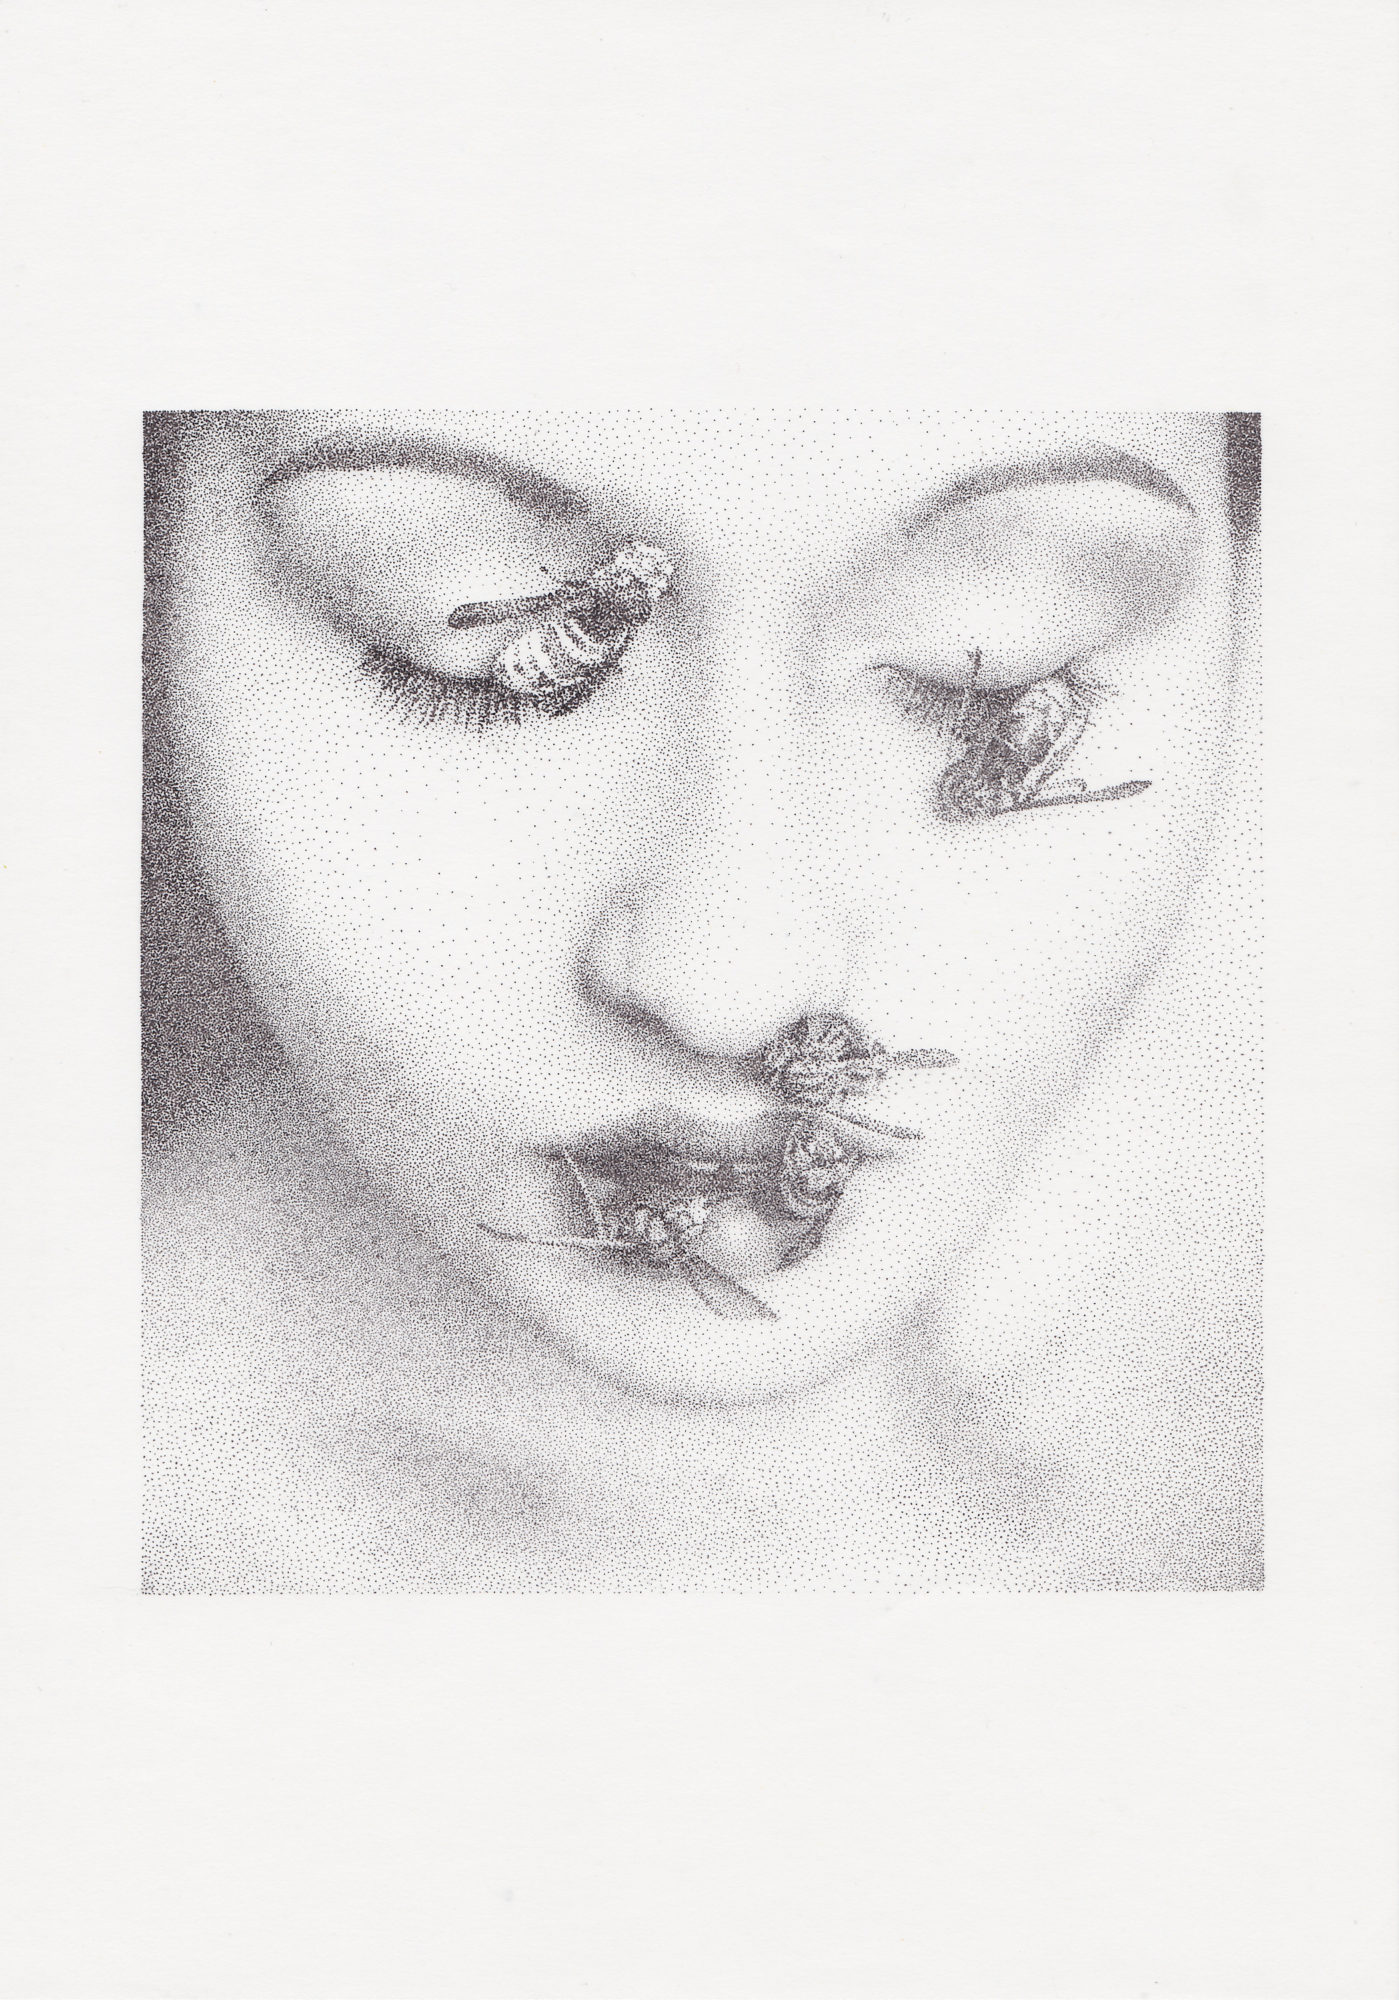 portrait drawing of woman with wasps on her face